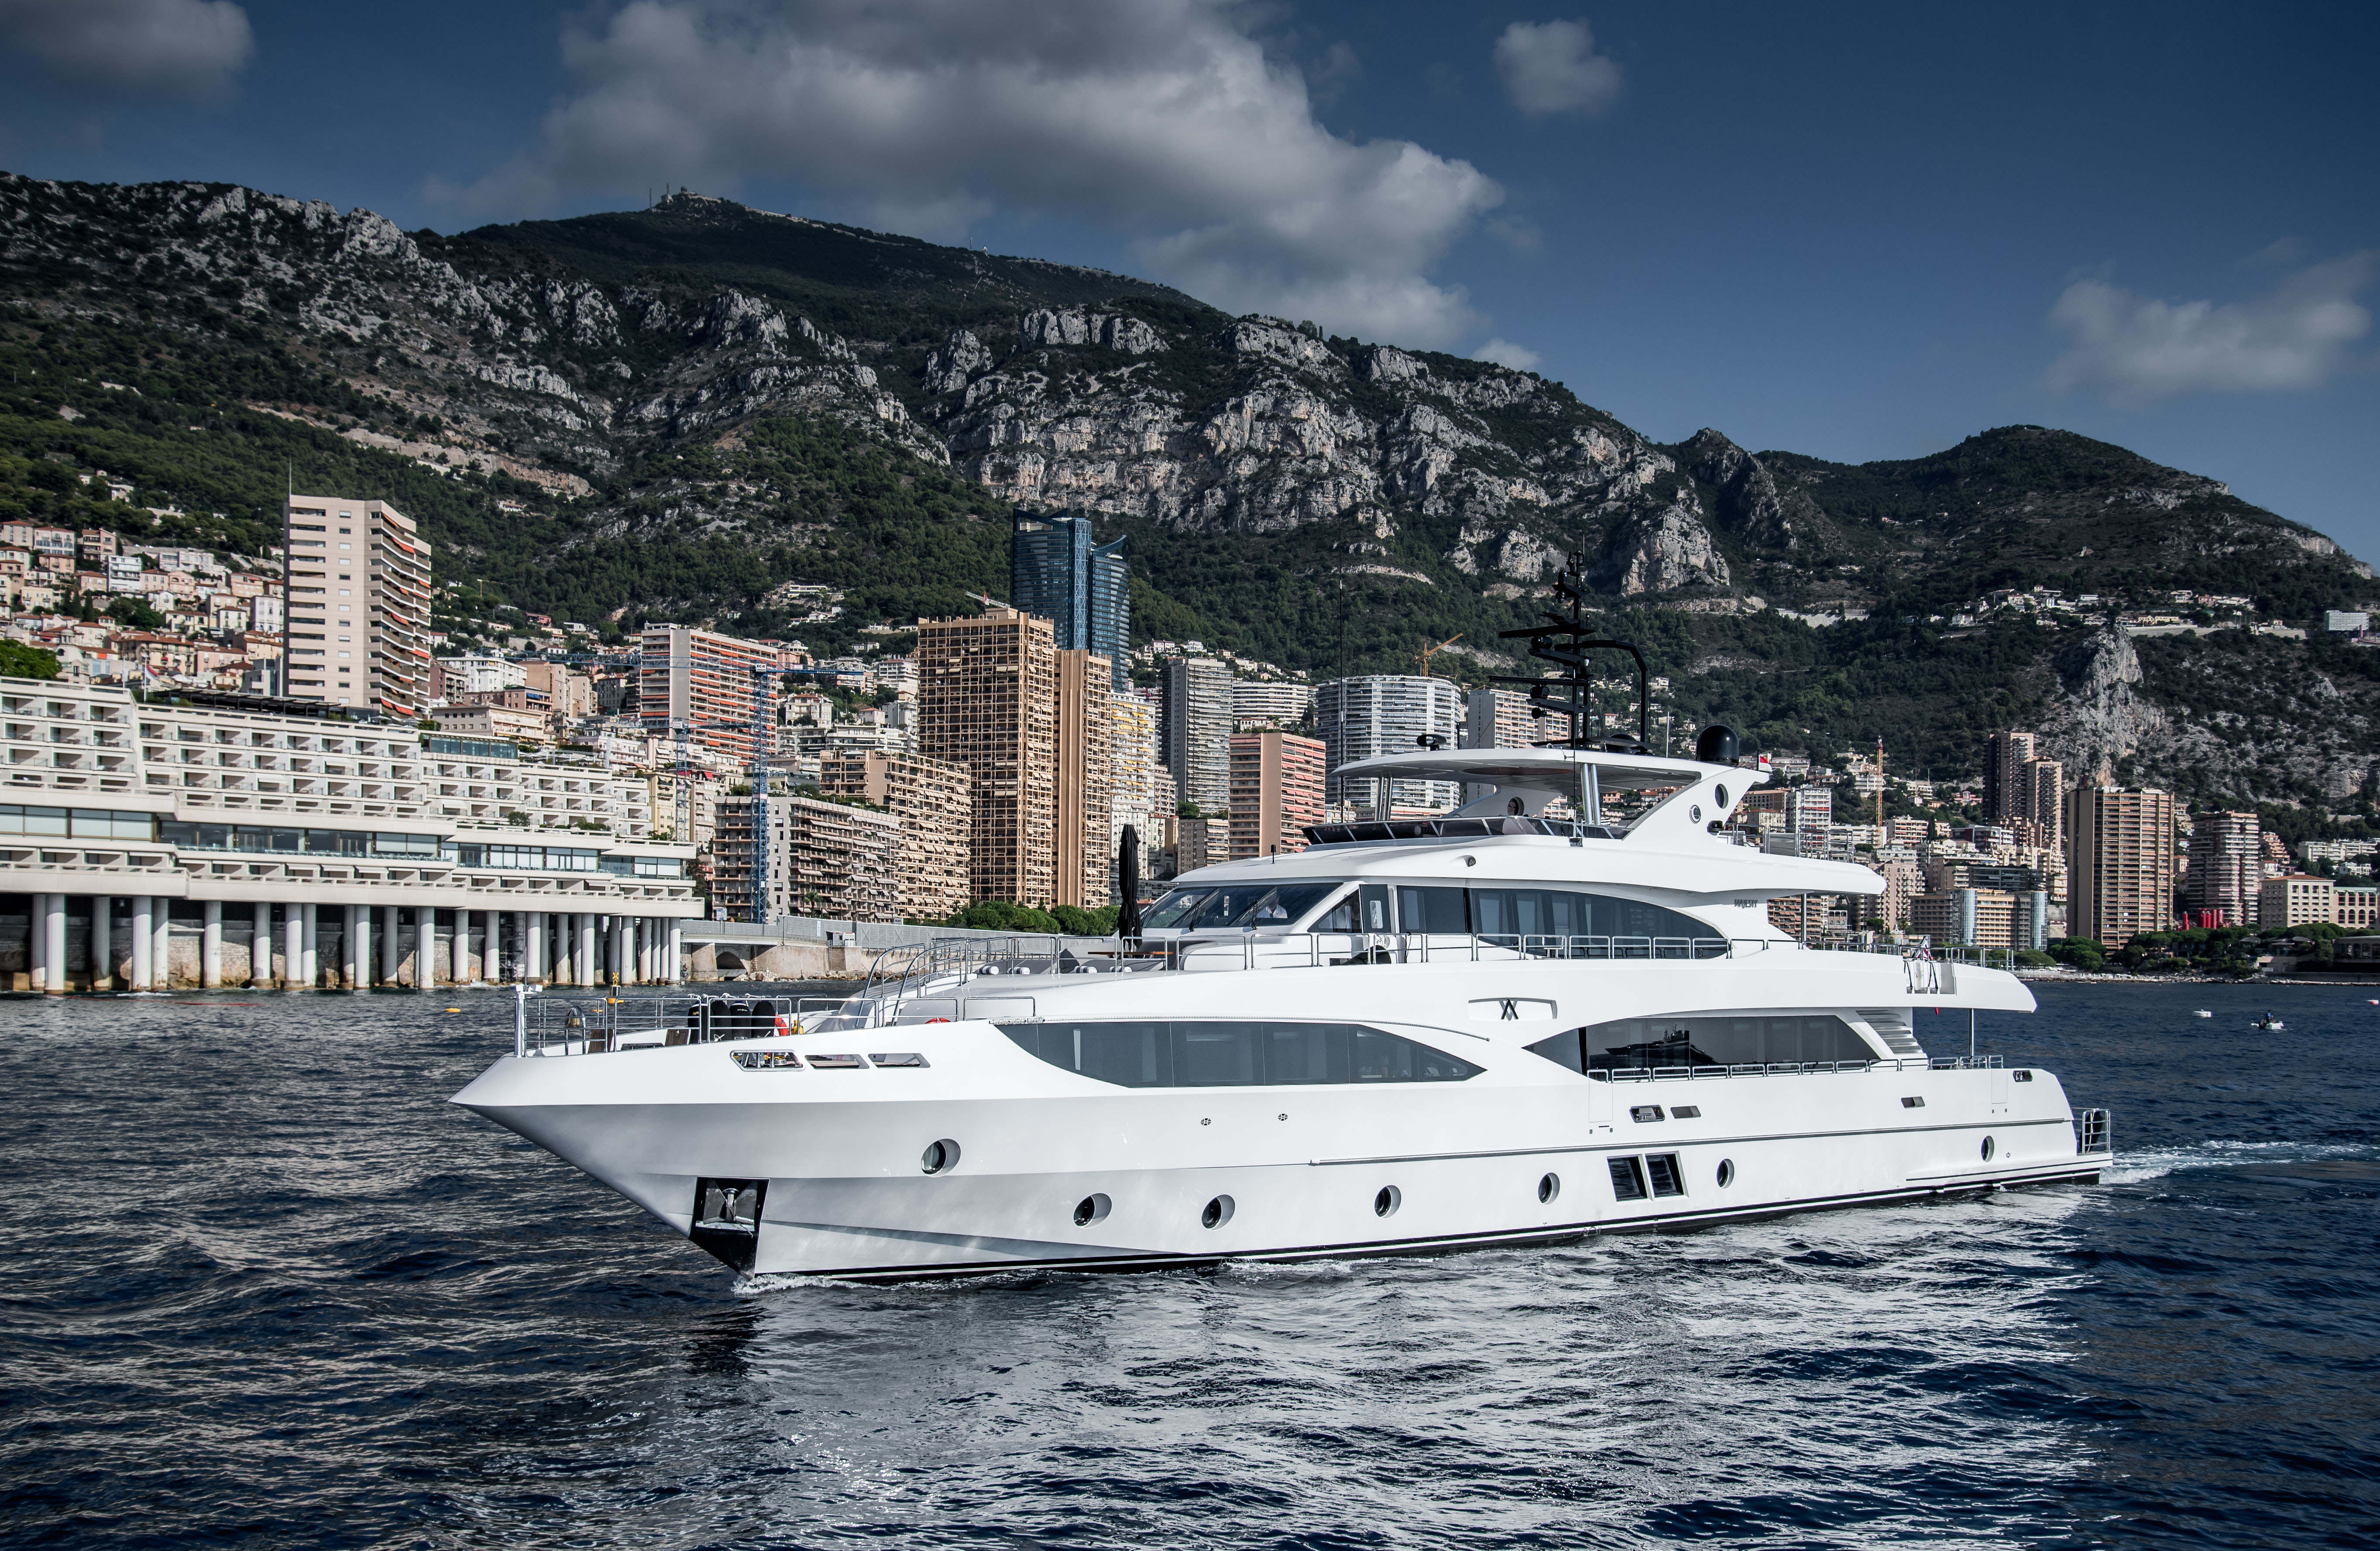 Majesty 125 Monaco 2018_photo credit to Tom Van Oossanen.jpg